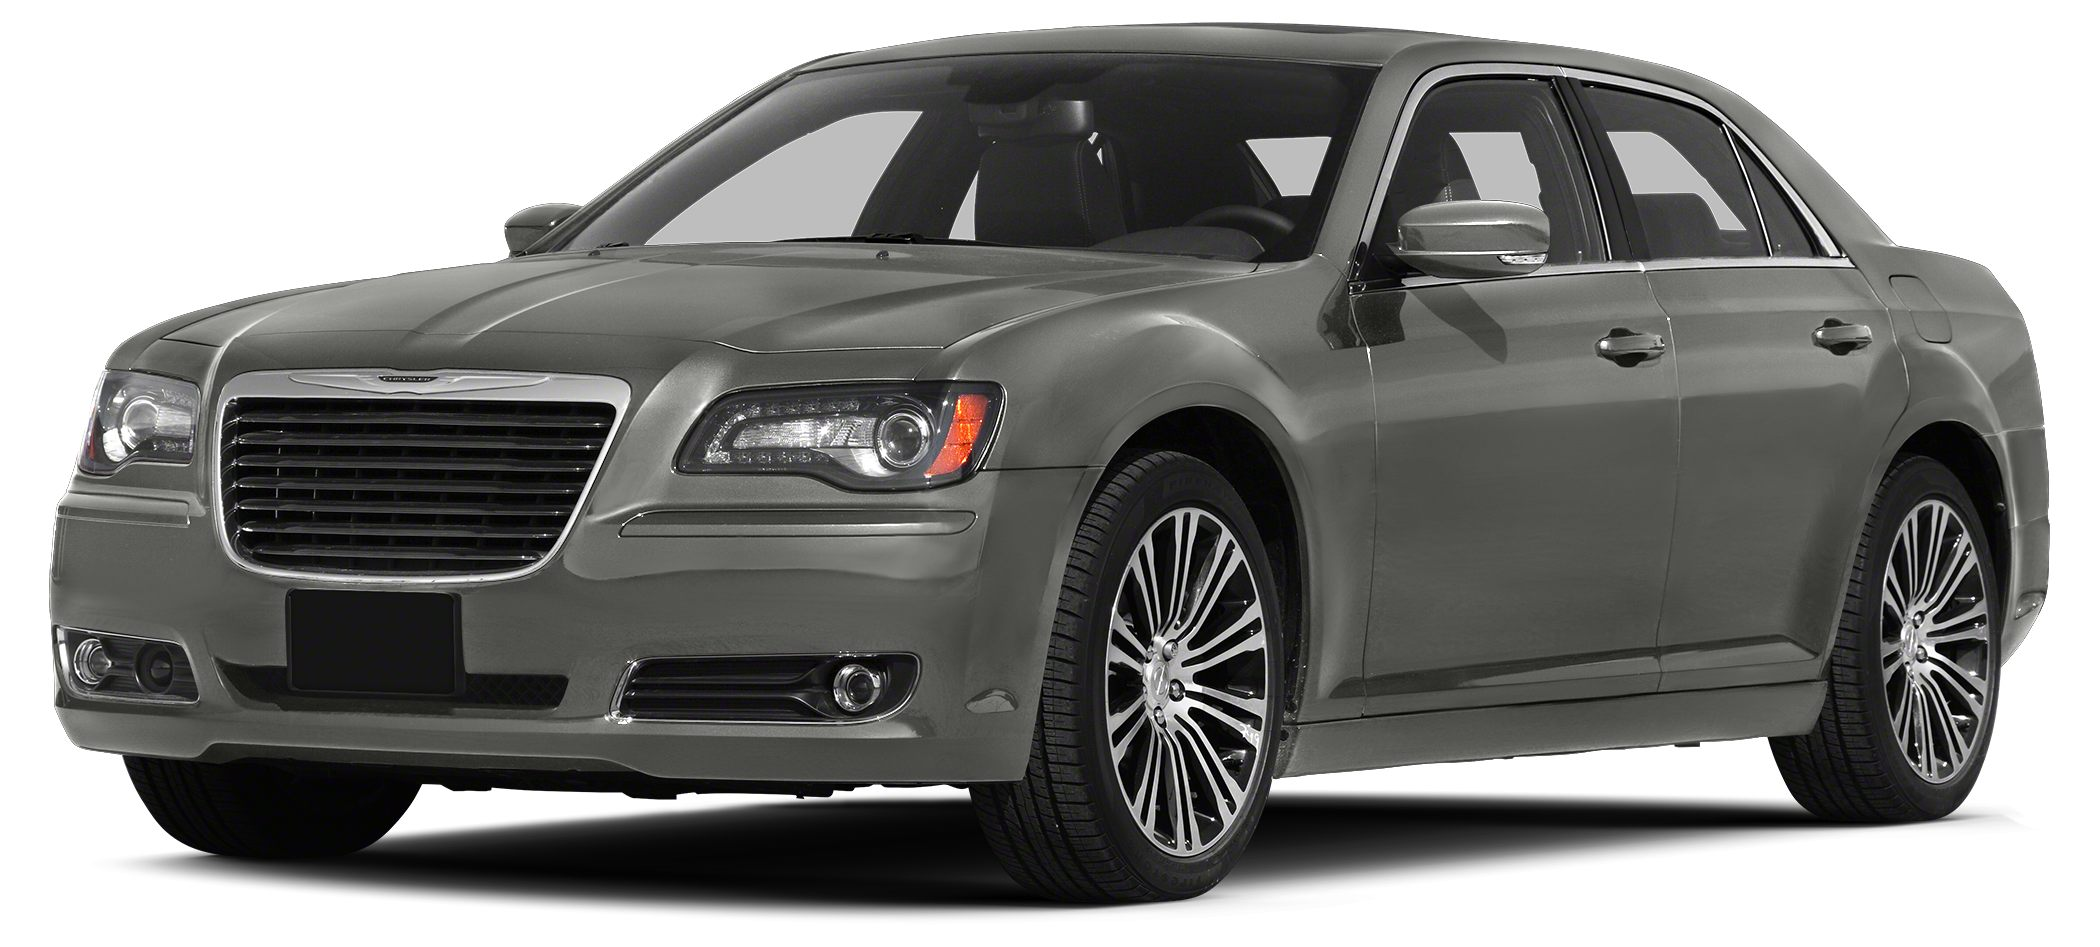 2013 Chrysler 300 S 2013 300 S Rear Back-Up CameraMoonroofSunroofNavigationGPSPush Start